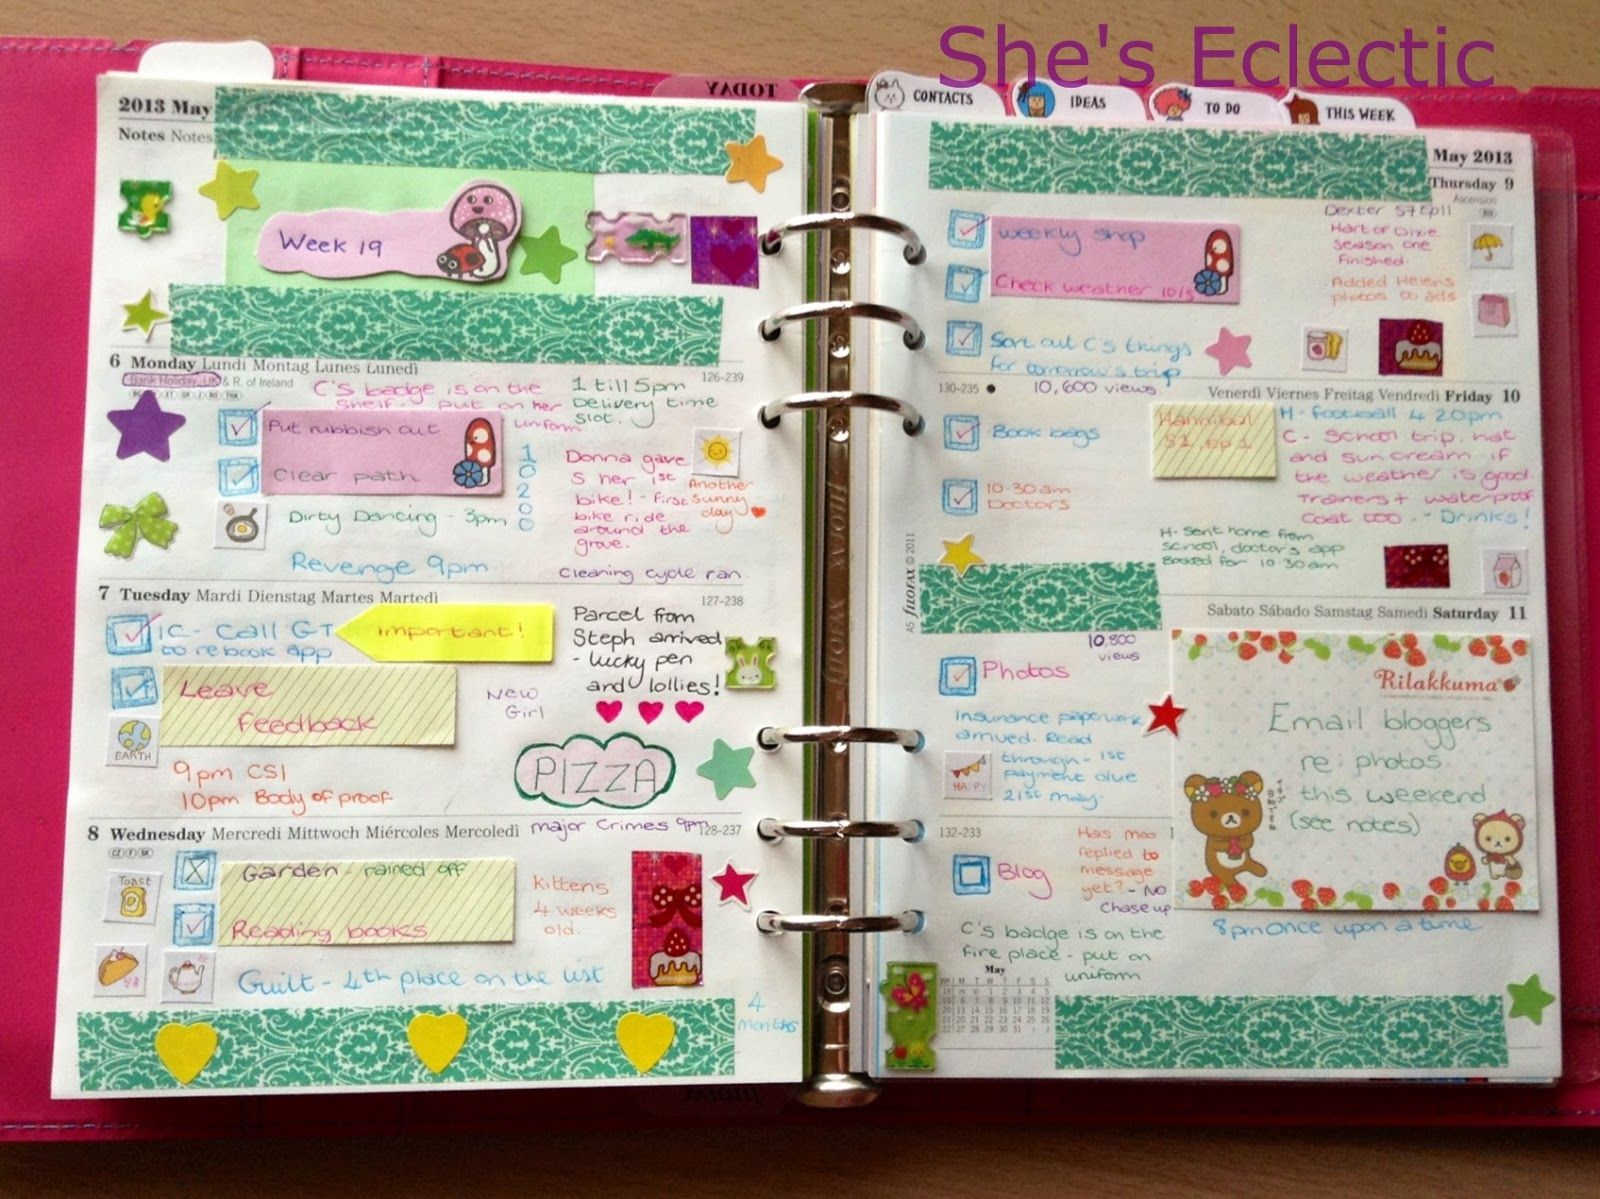 Shes Eclectic: My week #19/52